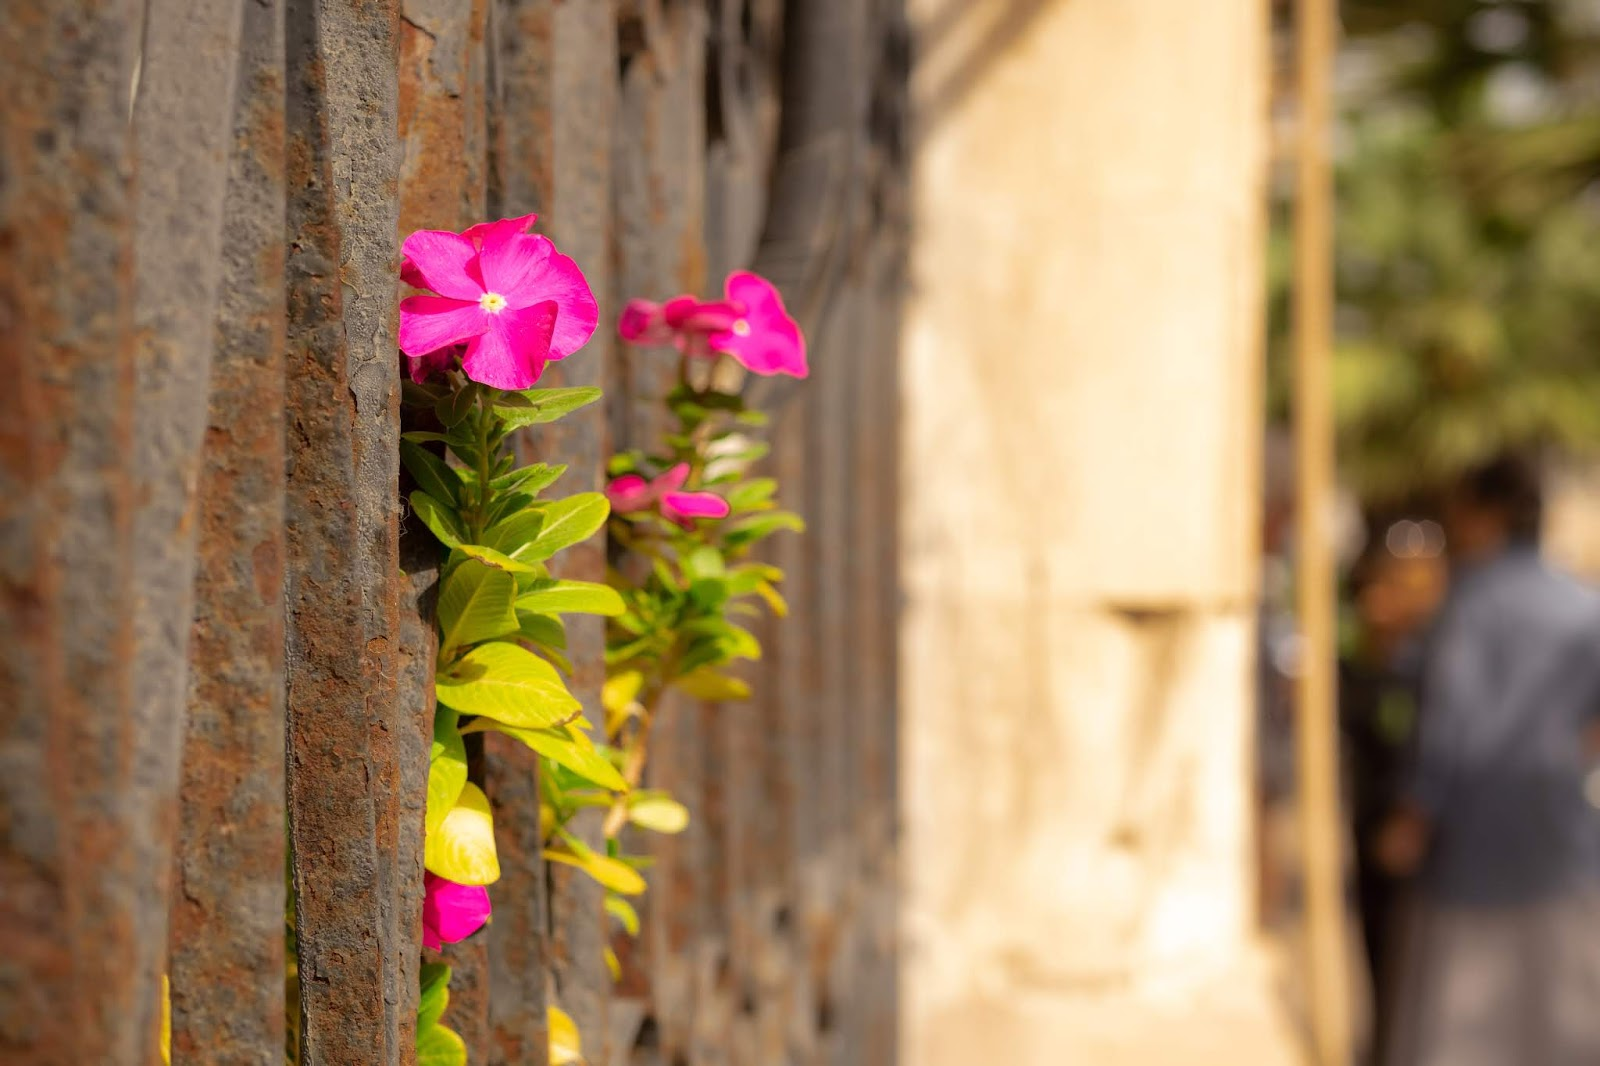 Flowers sticking out between bars on a street in Florentin in Tel Aviv.